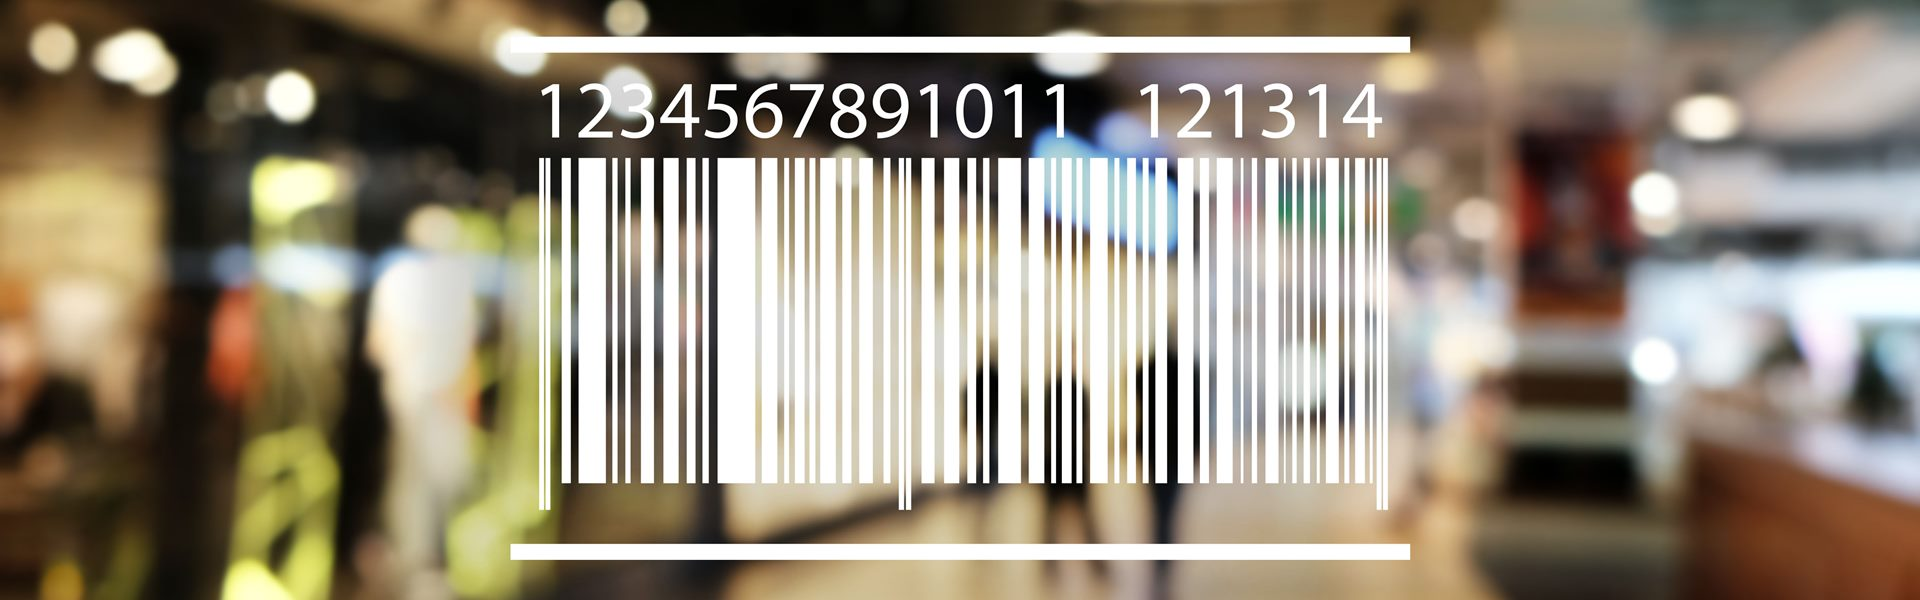 Barcode Products